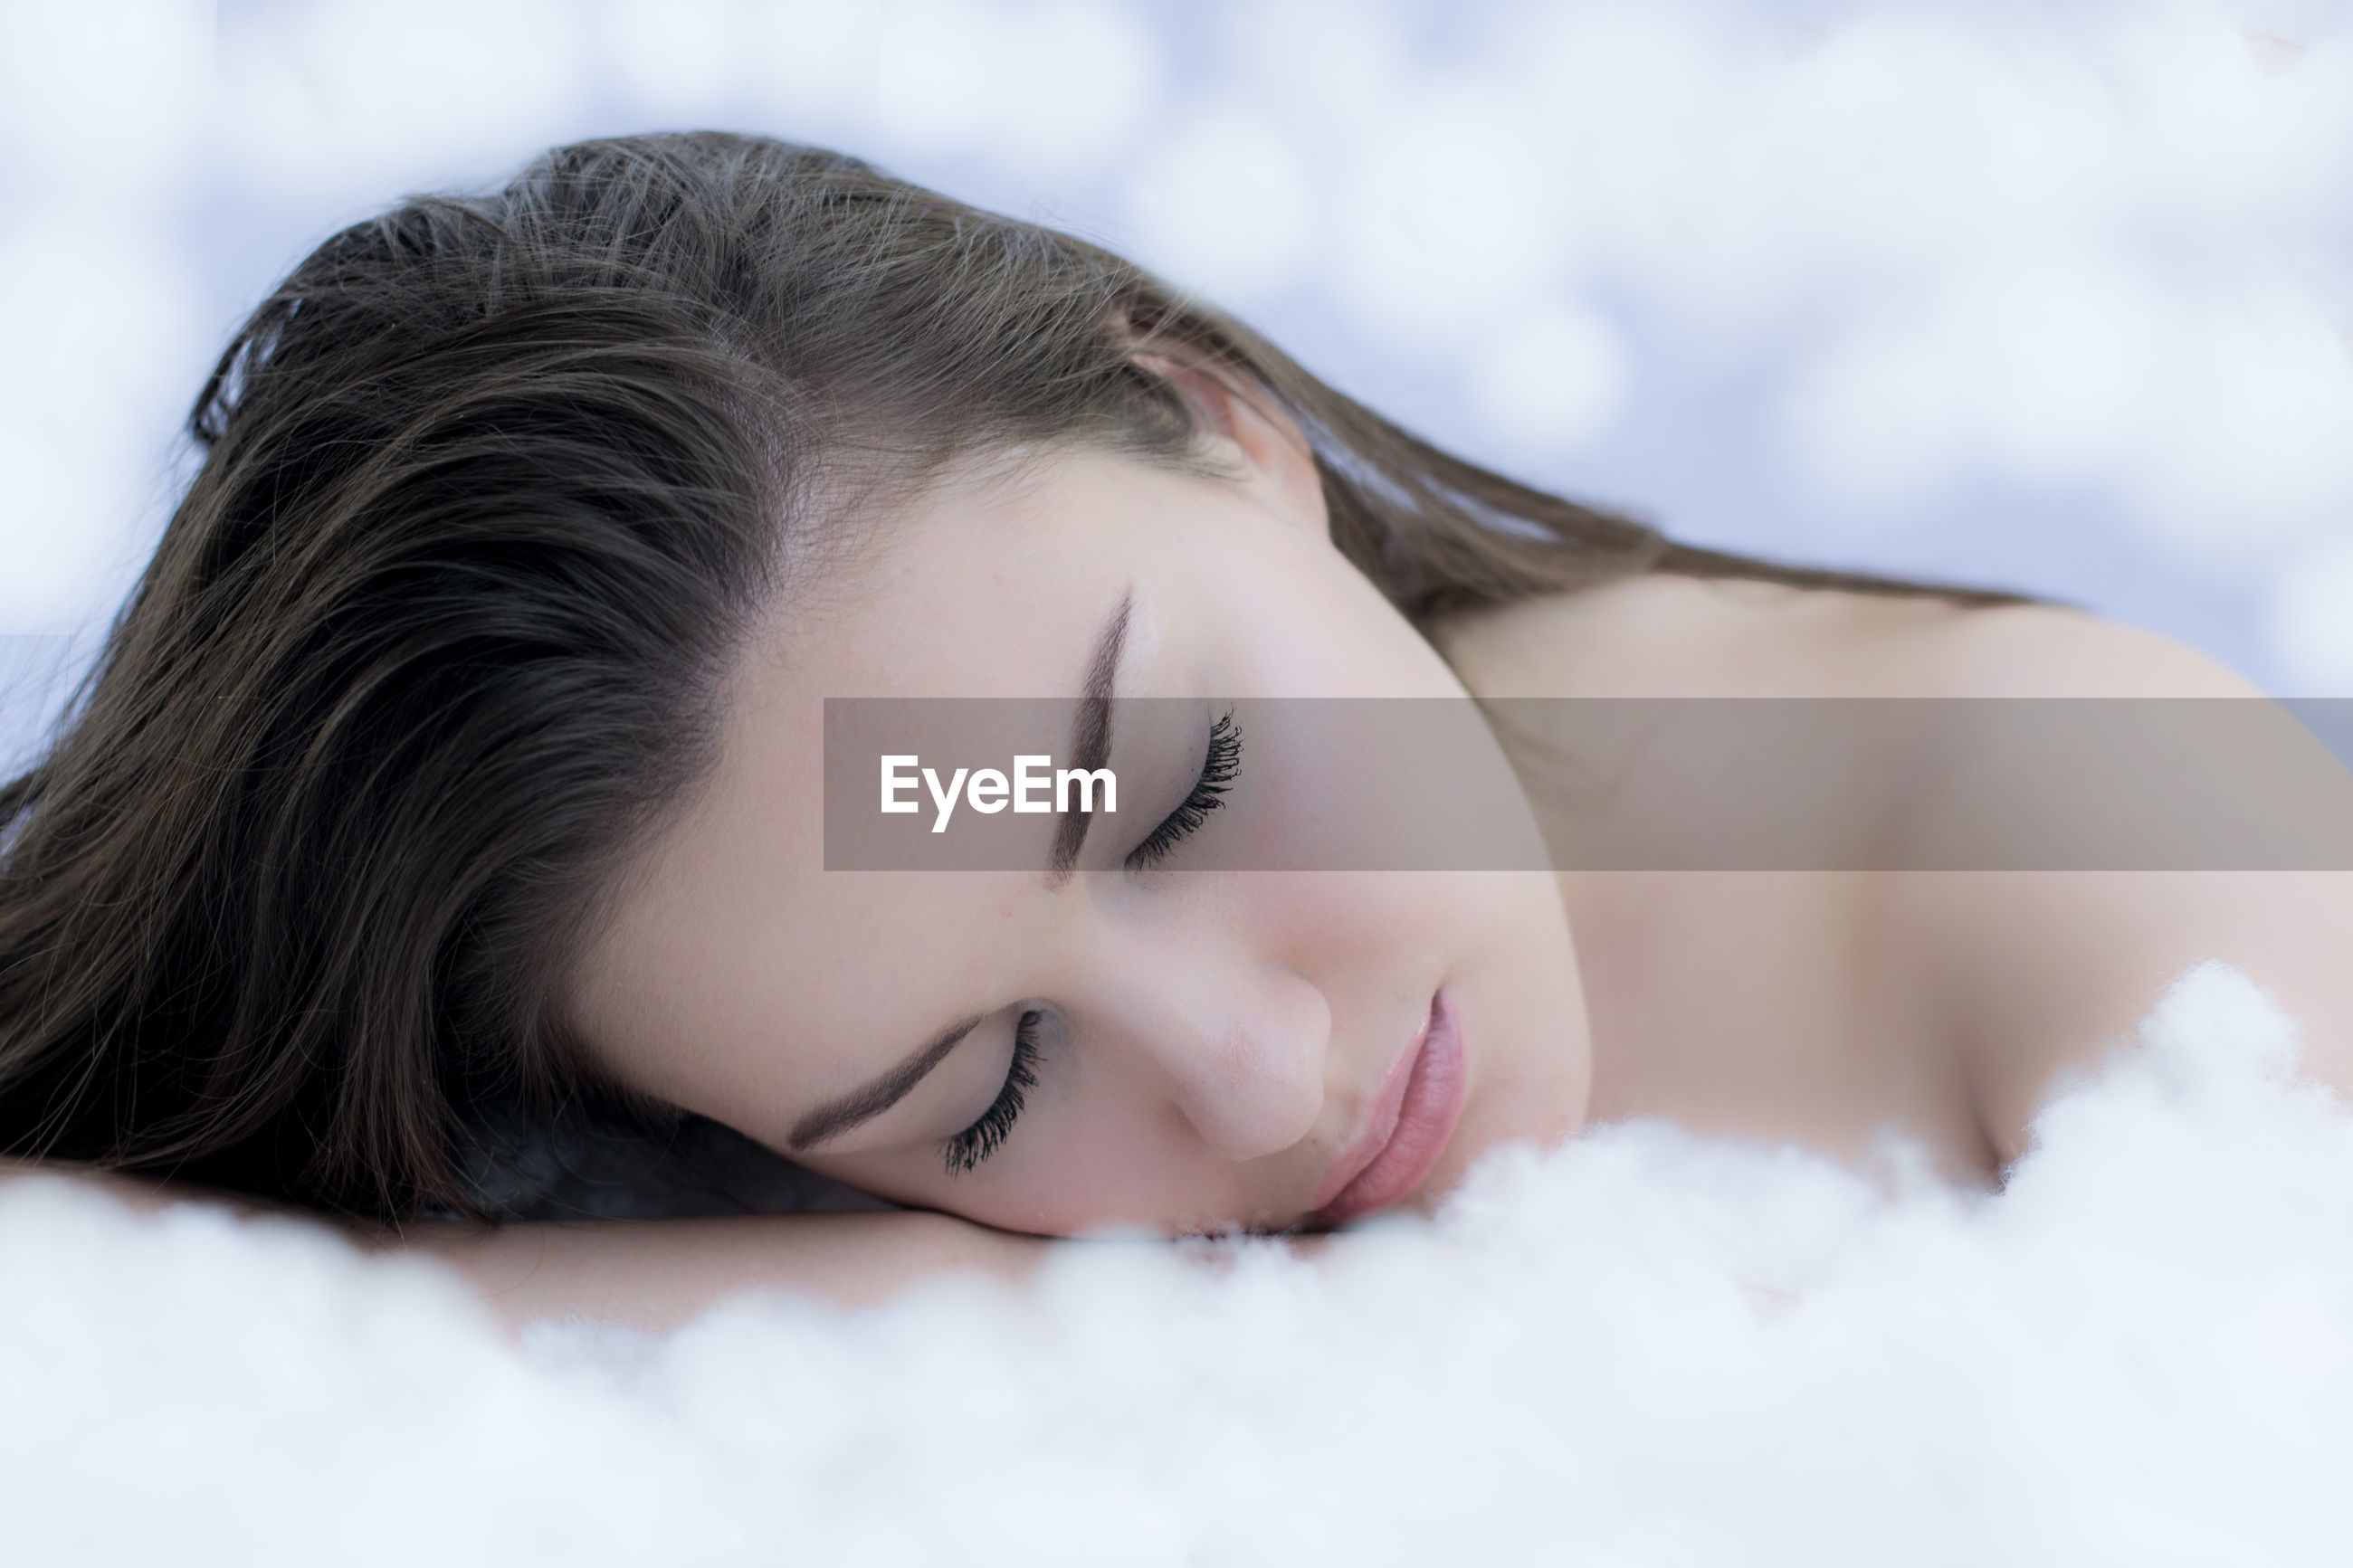 Close-up of teenage girl sleeping on bed